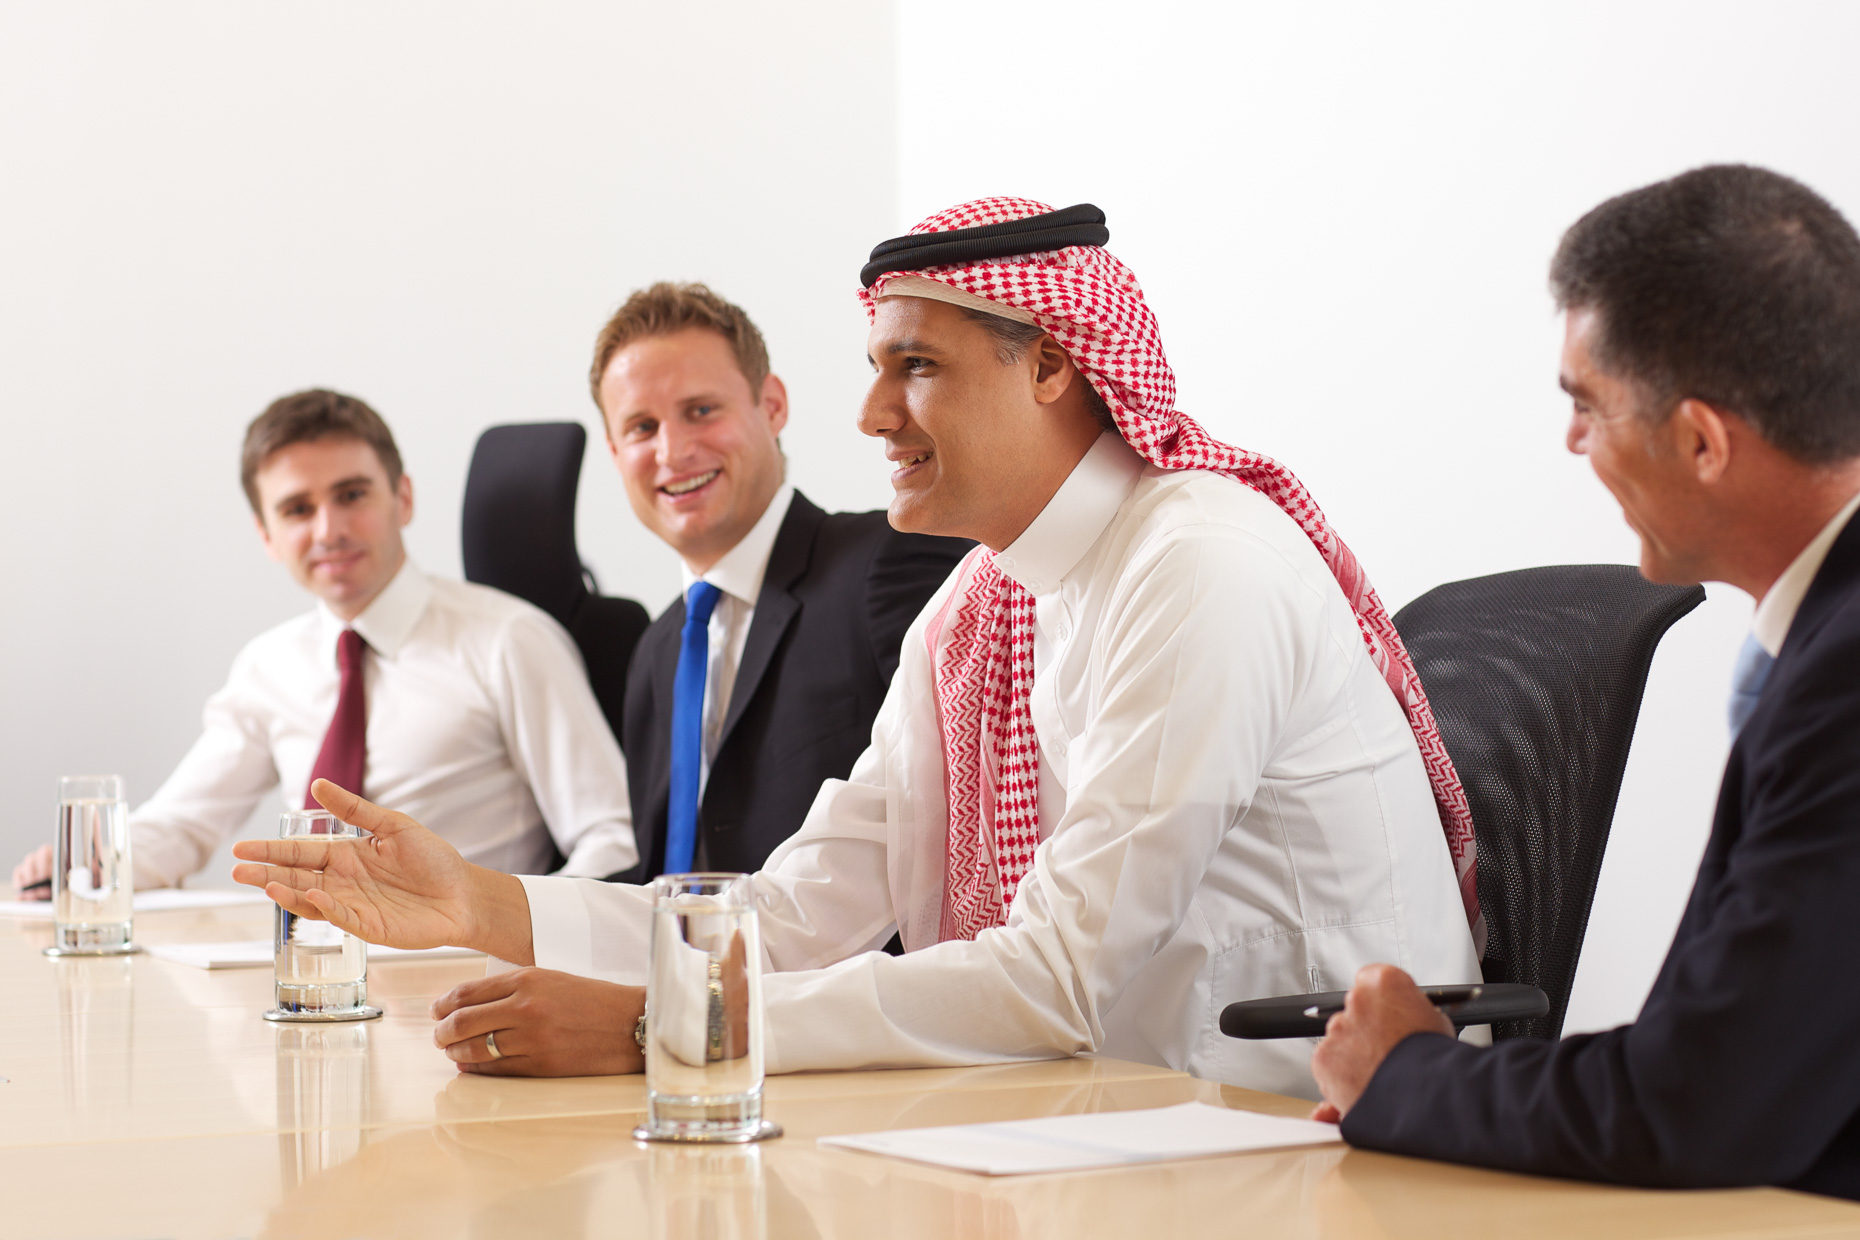 Arab Business Meeting | Professional Photoshoots Dubai